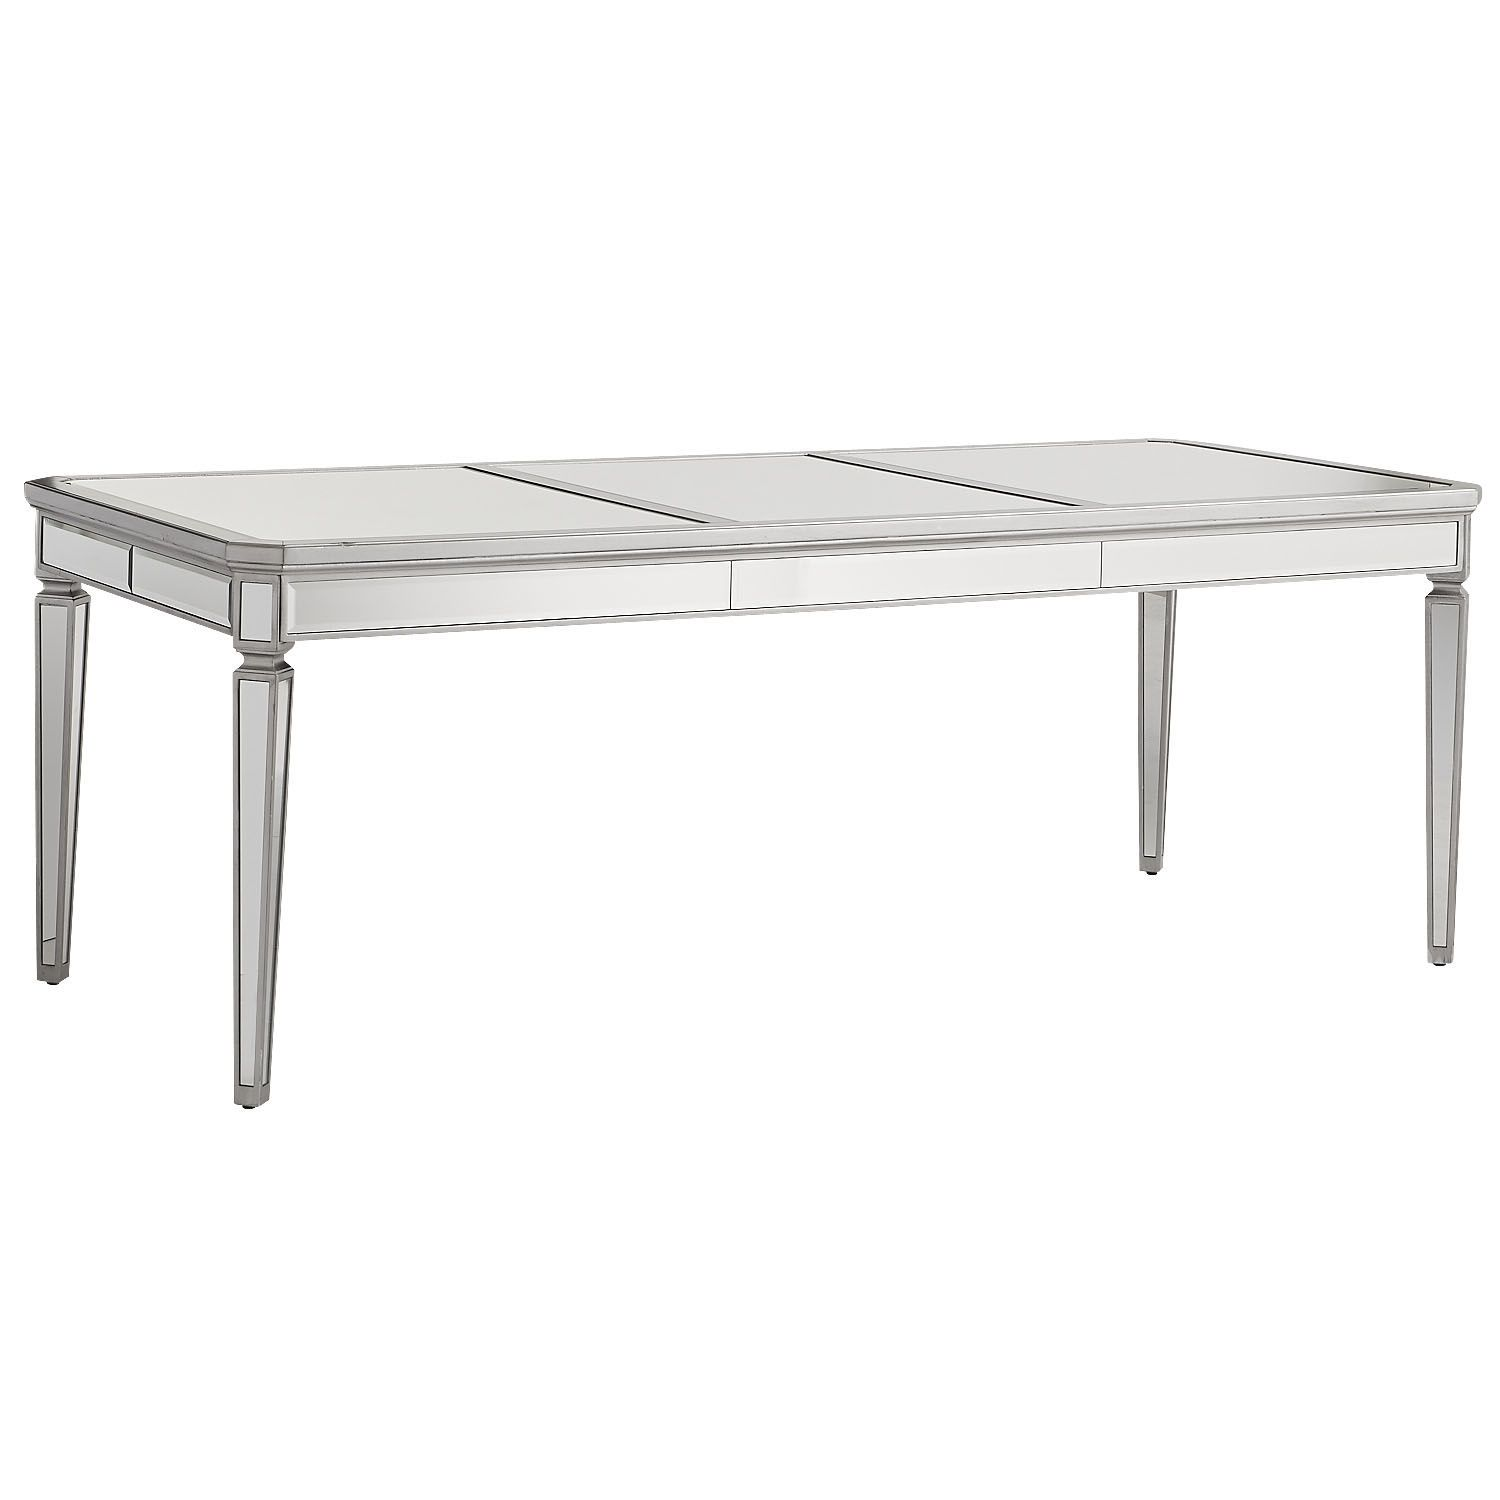 Merriweather Mirrored Dining Table Silver Pier Imports - Silver mirrored dining table